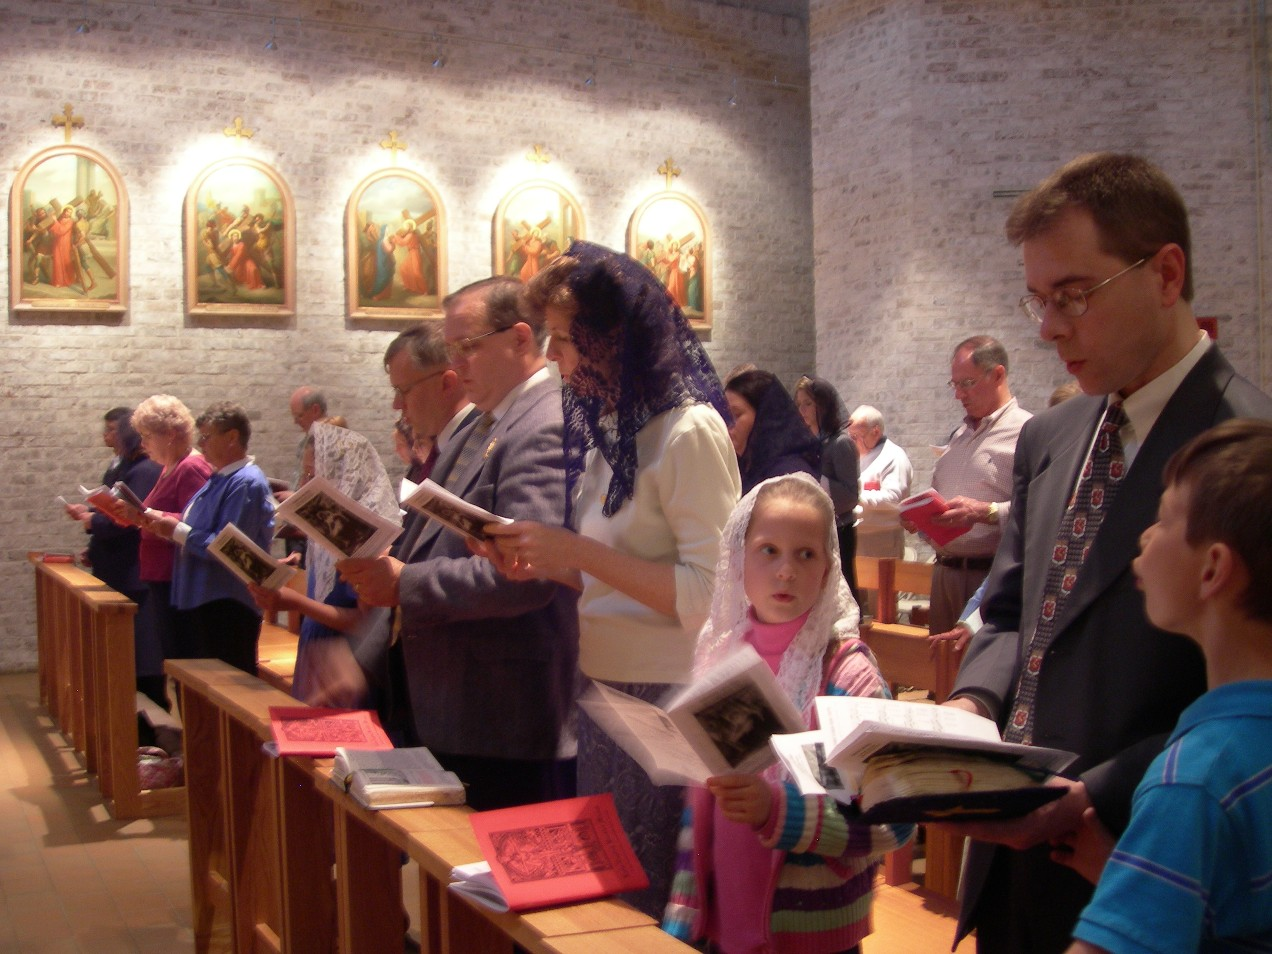 The Institute of Christ the King helps along the TLM in the